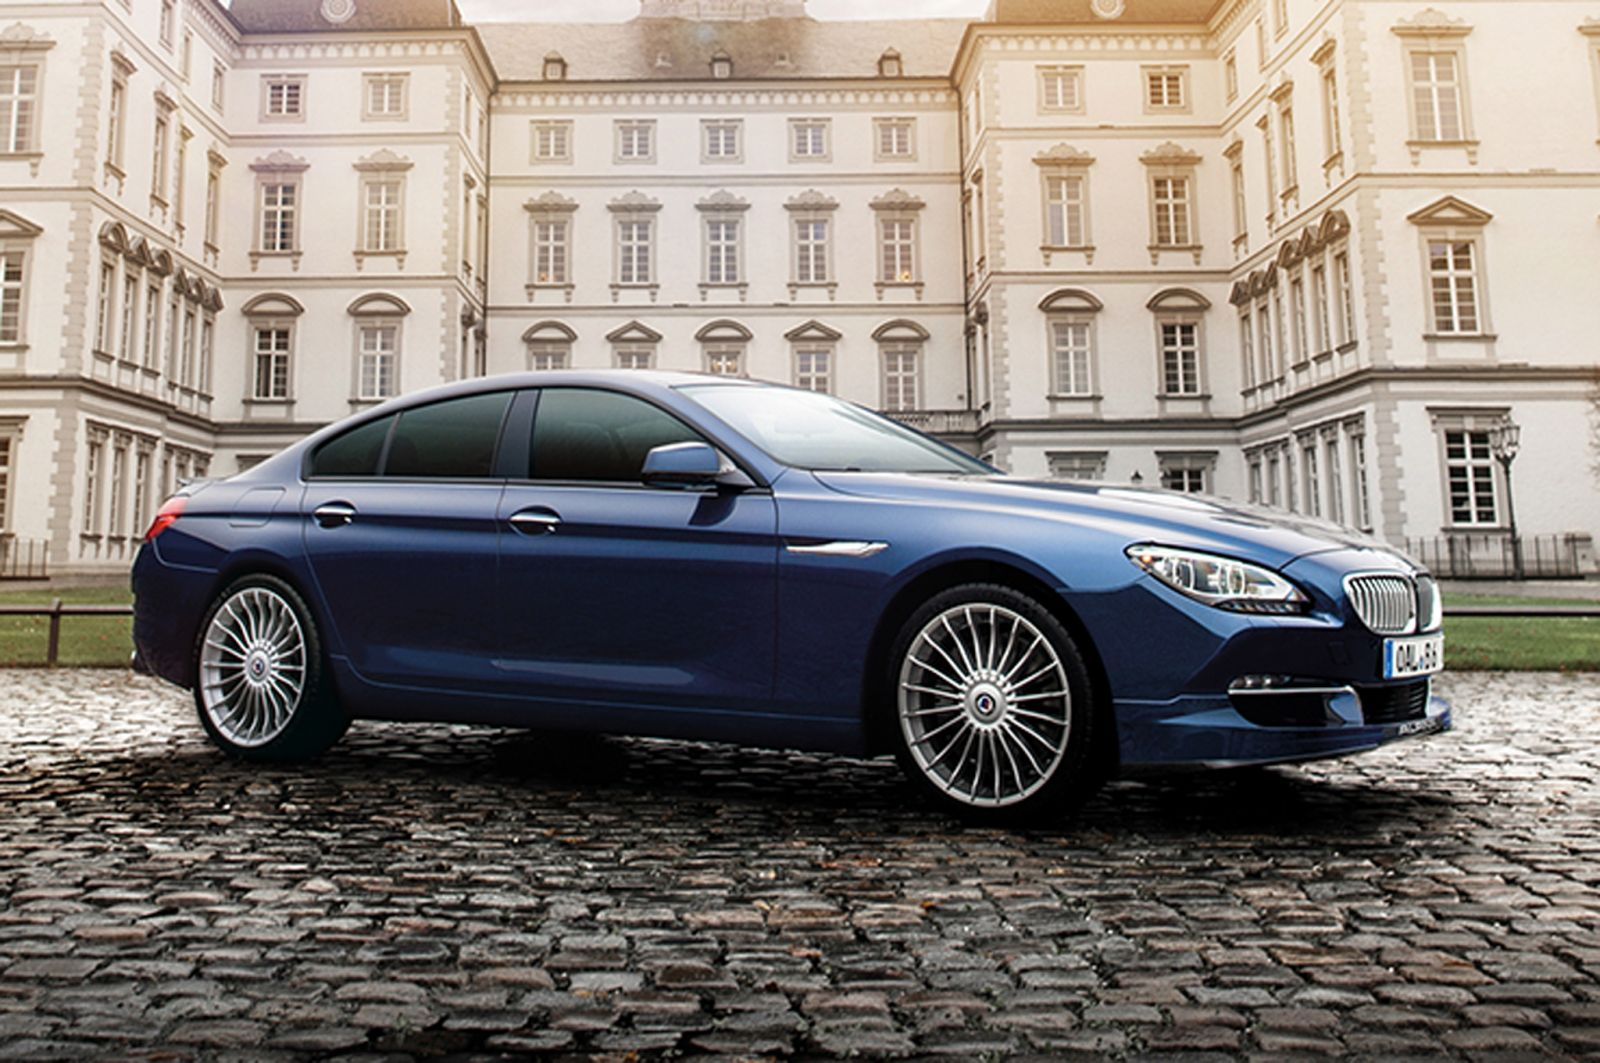 BMW Alpina B6 xDrive Gran Coupe 2016